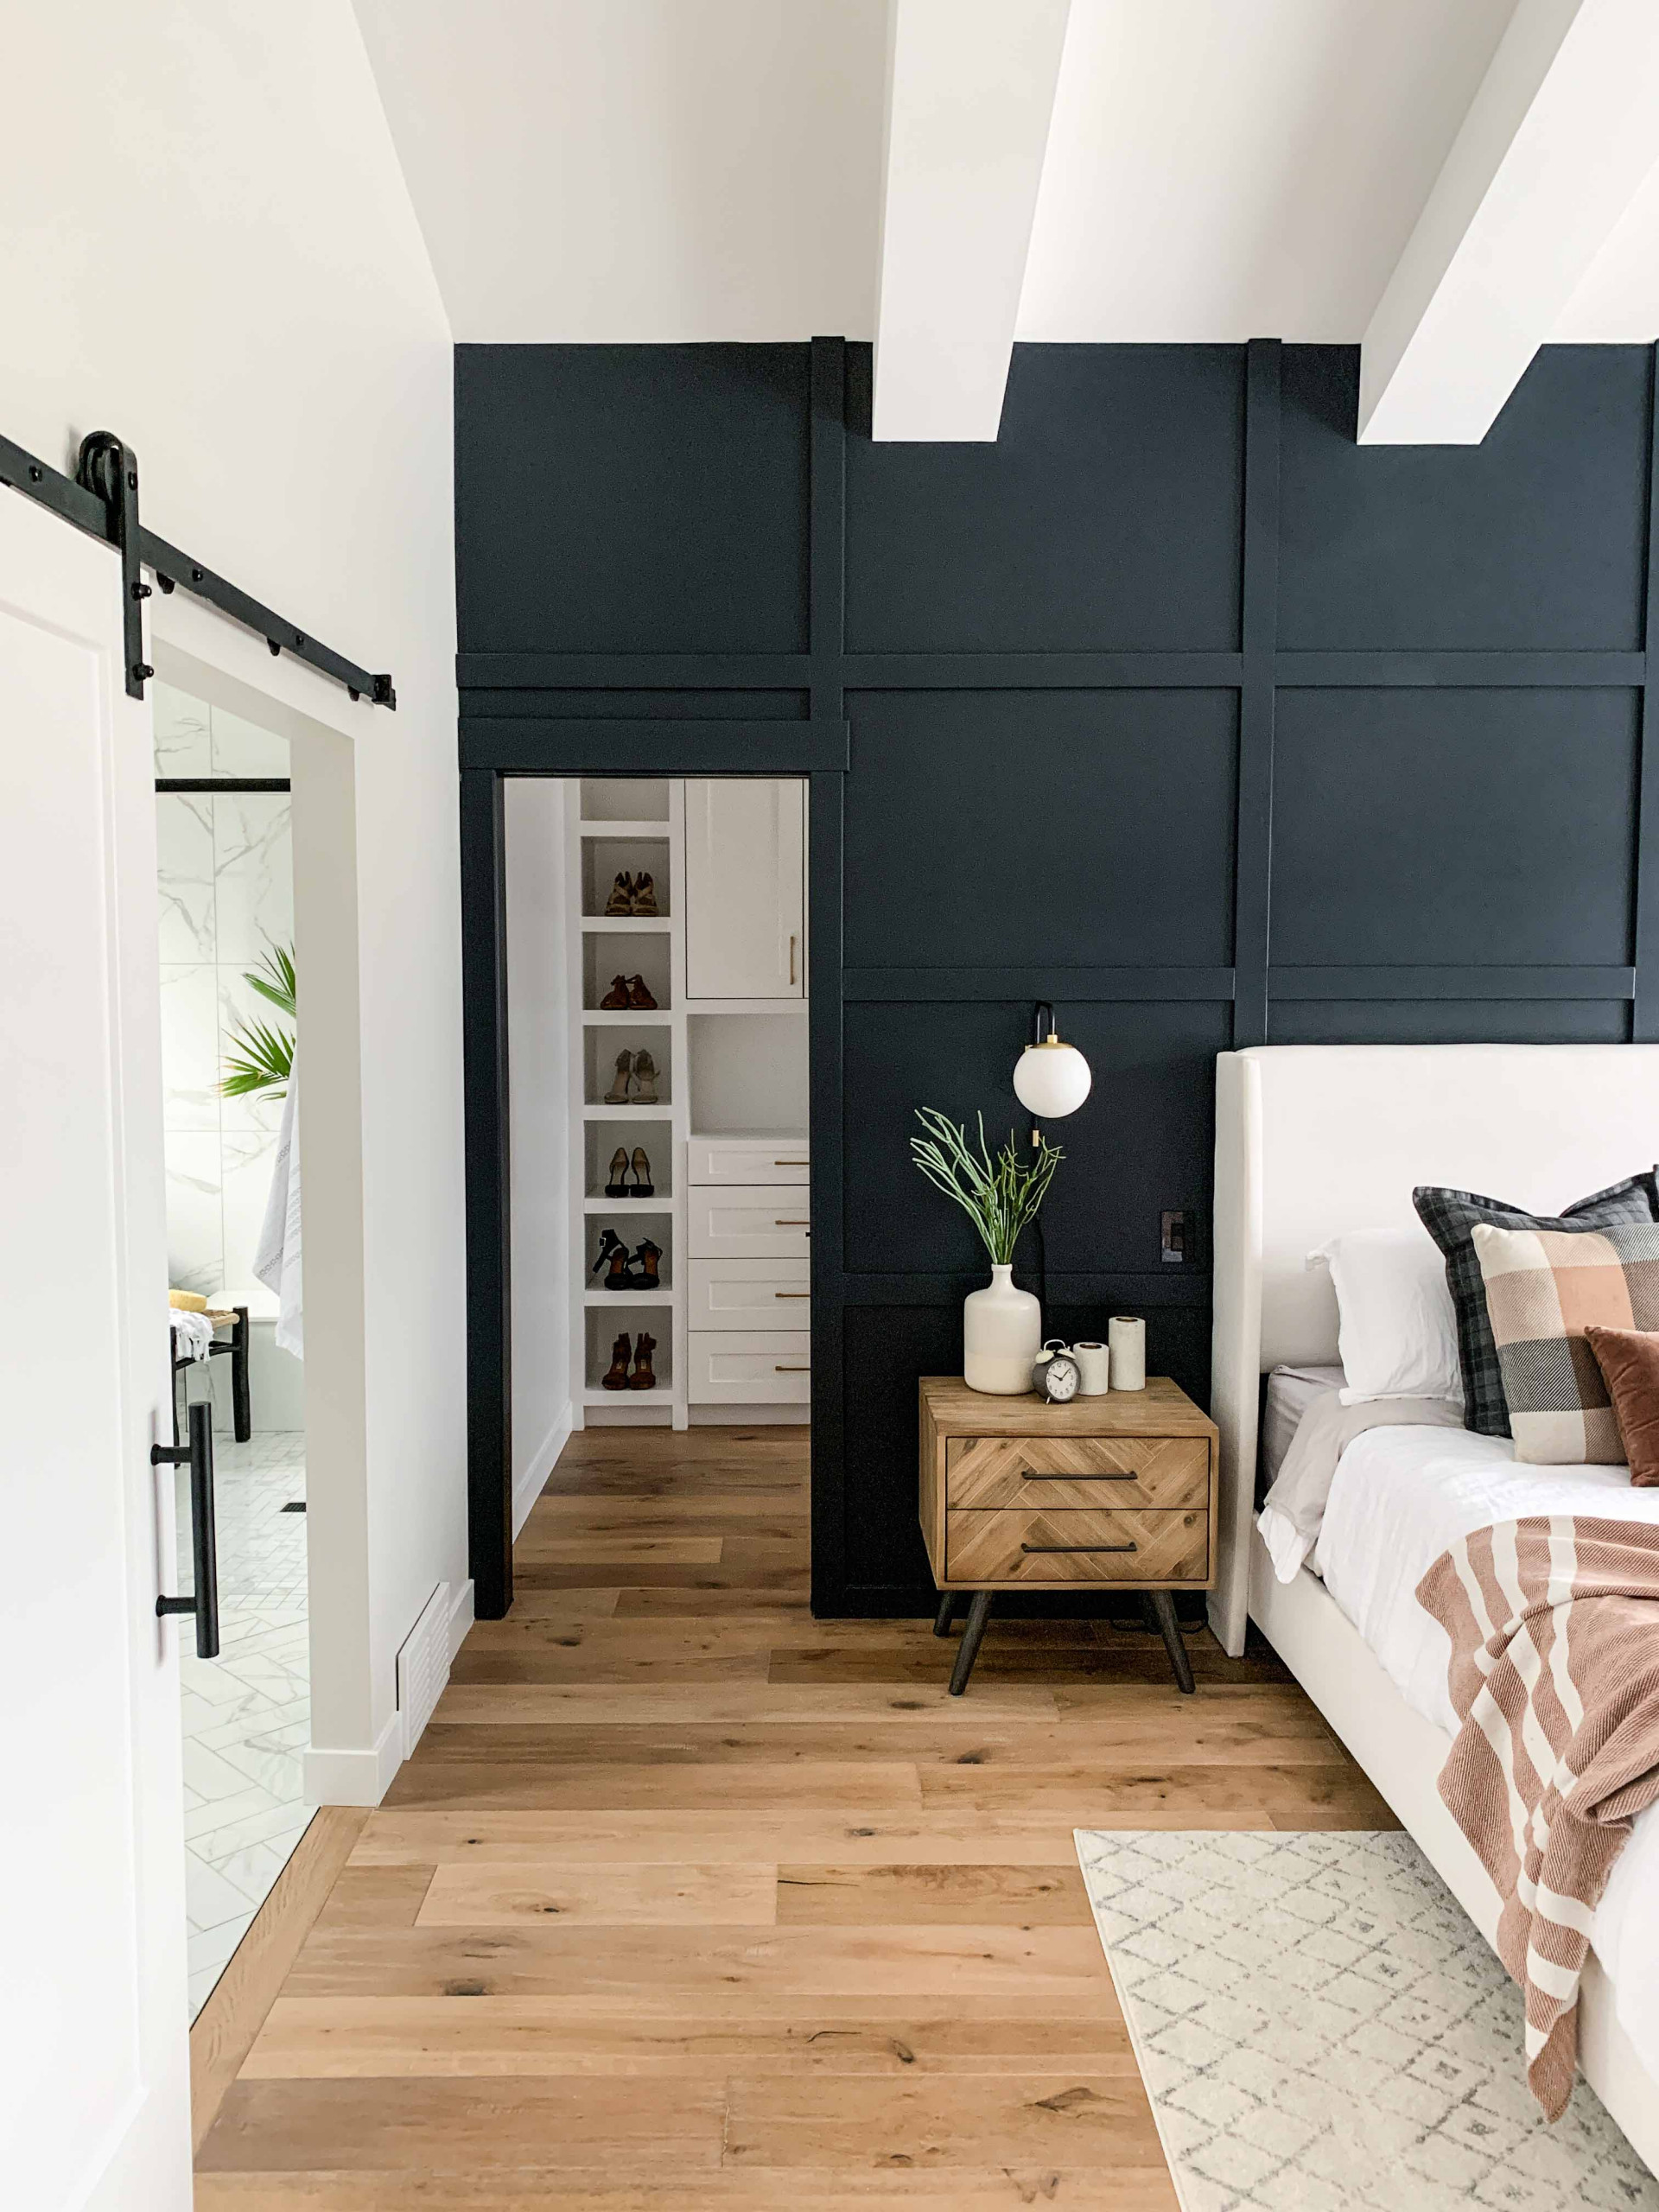 75 Beautiful Bedroom With Black Walls Pictures Ideas June 2021 Houzz